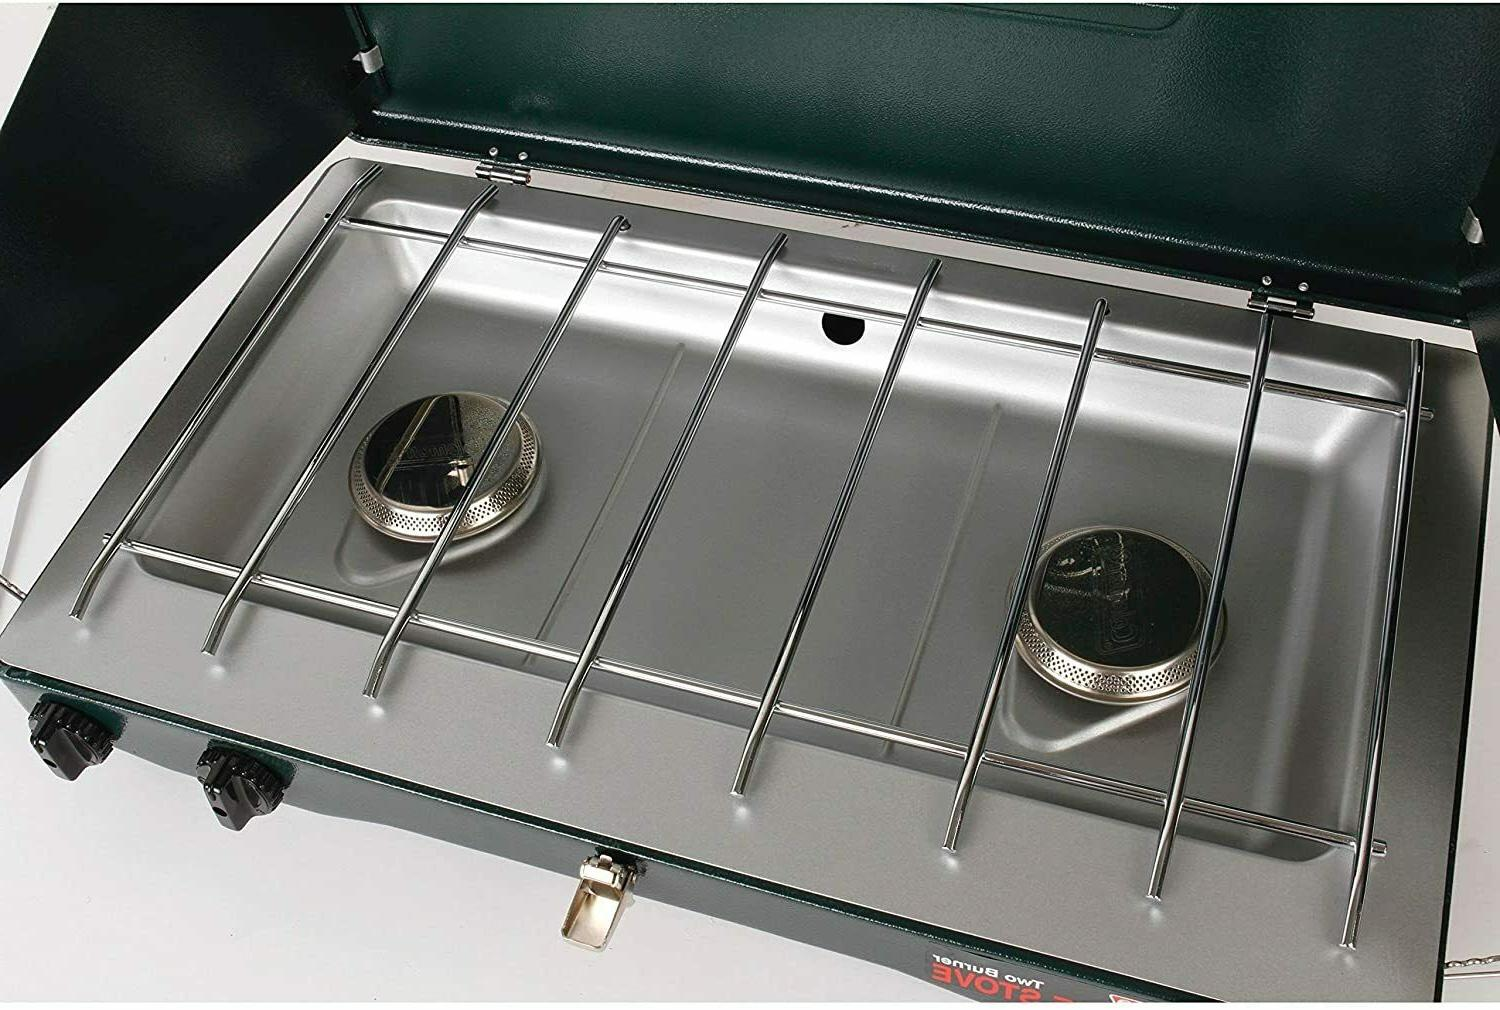 Coleman 2-burner Gas Stove 10,000 Outdoor Cooking Camping